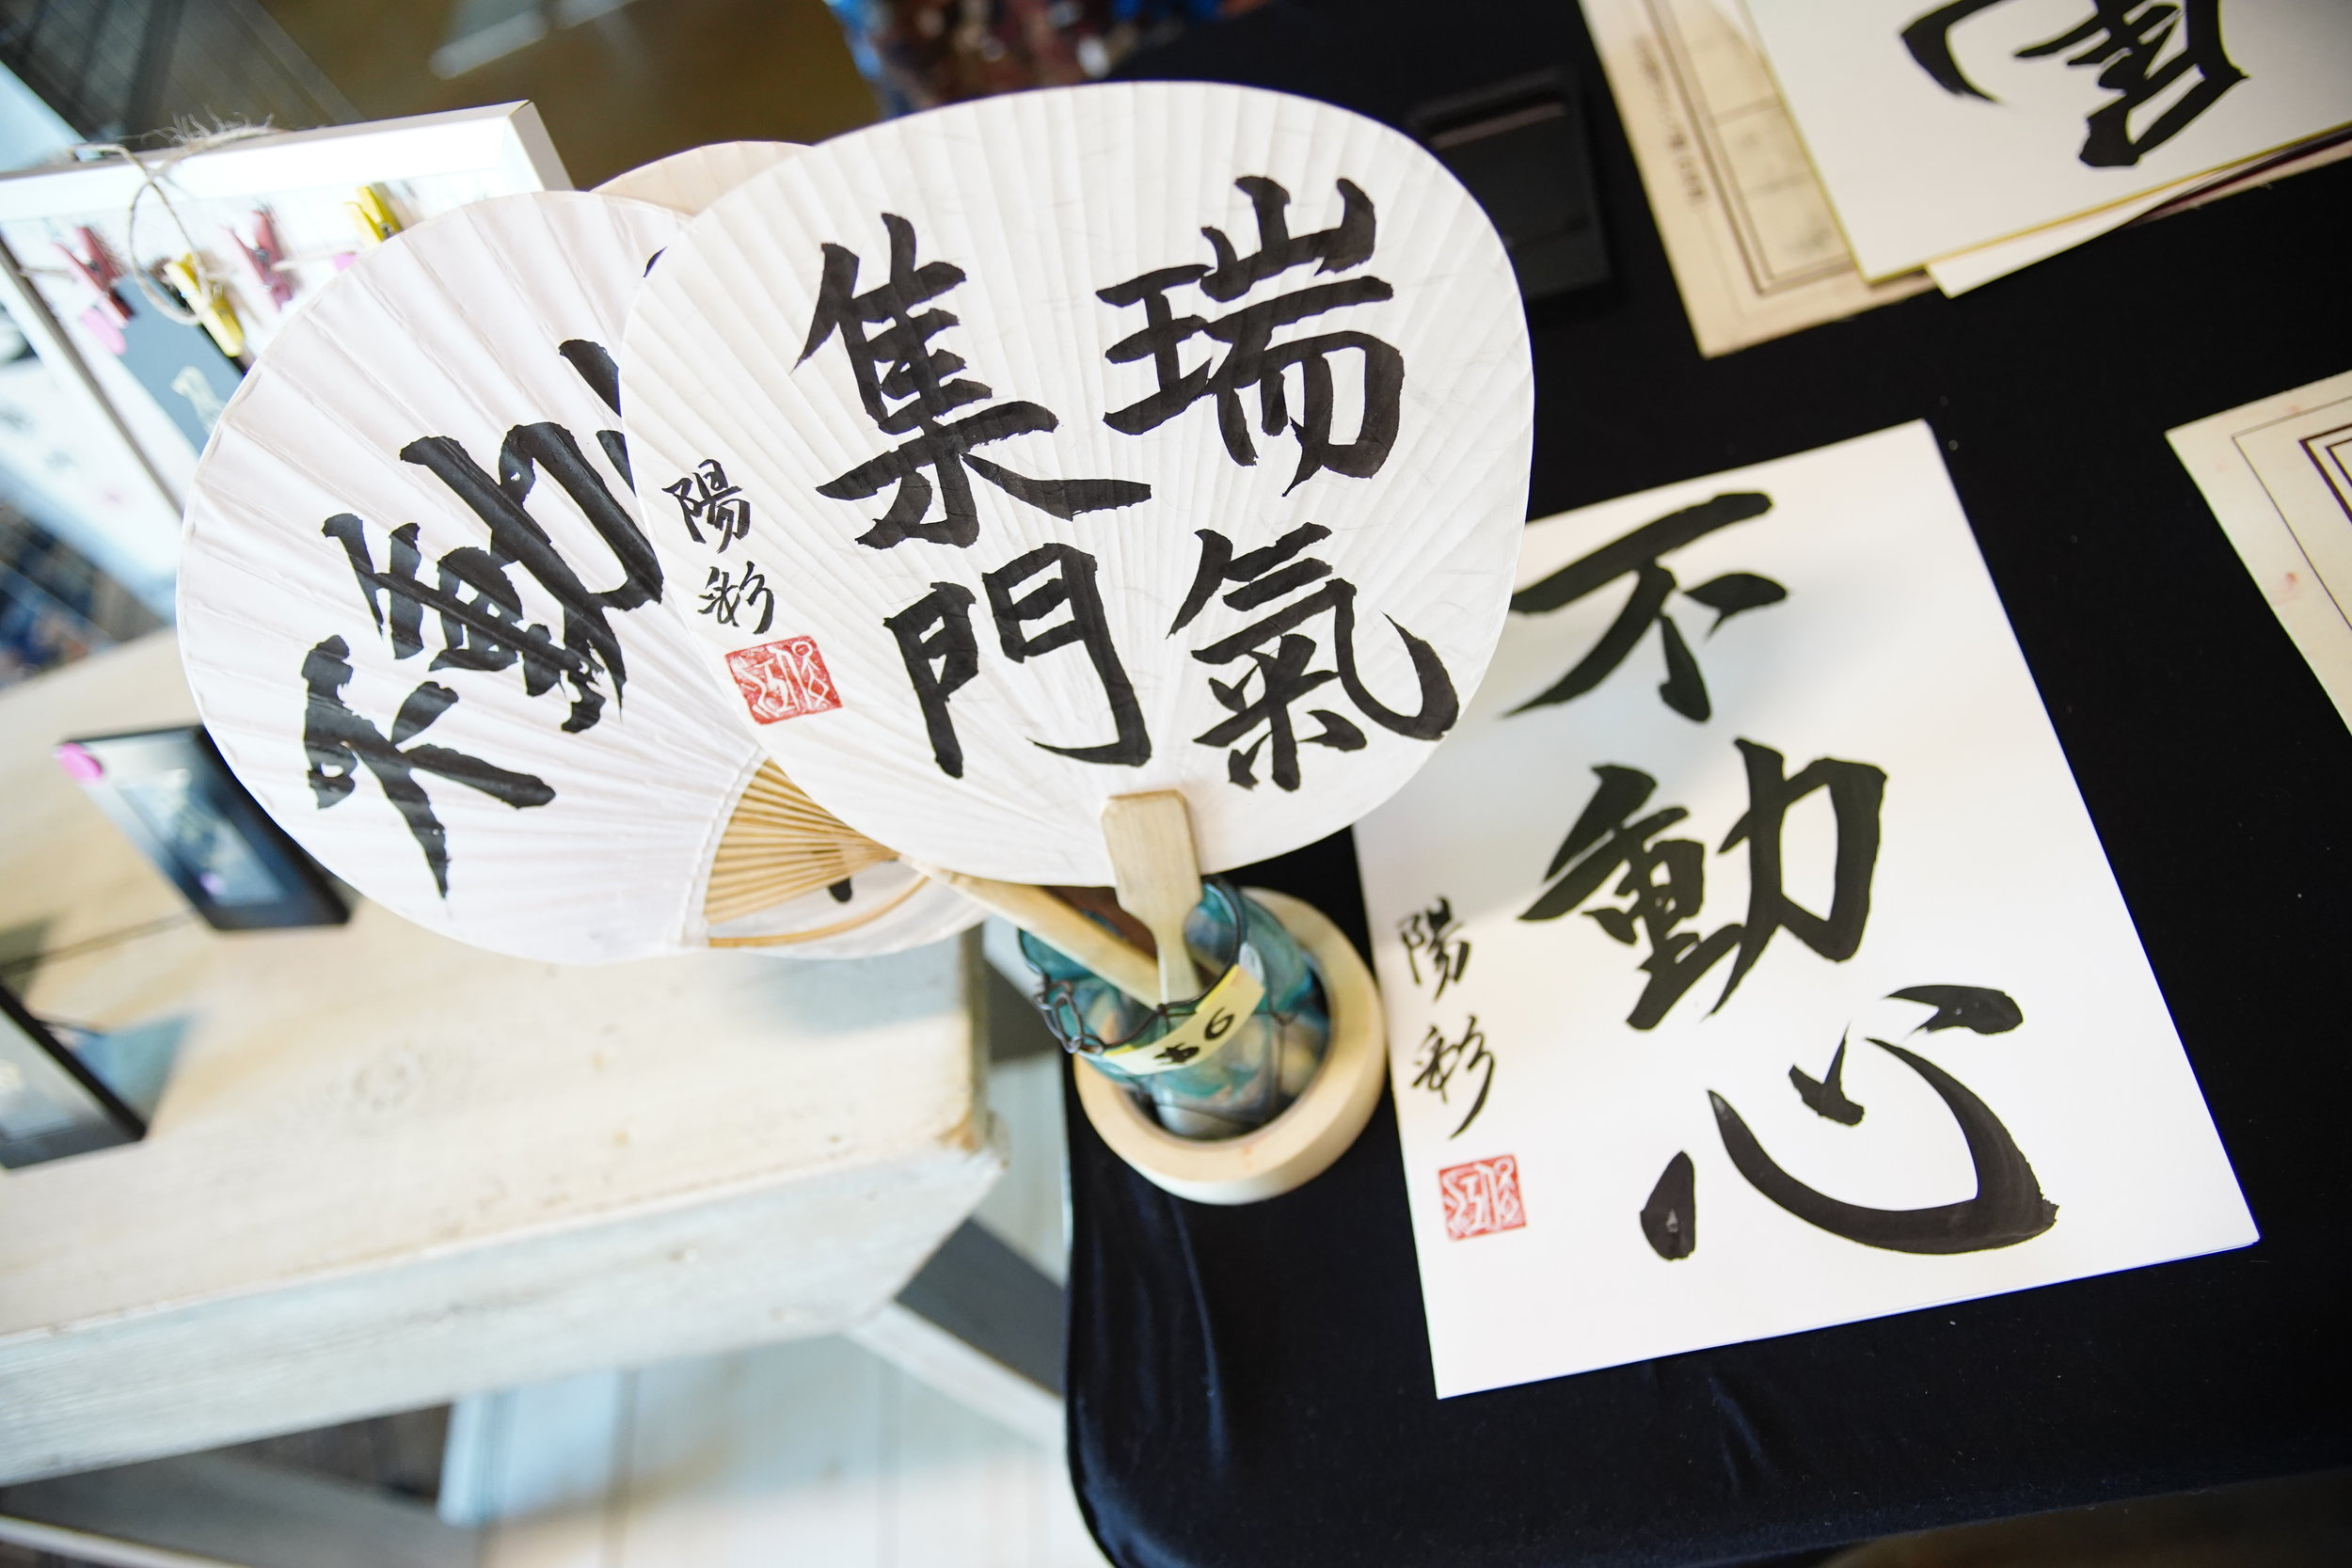 TRADITION - Don't miss the chance to try our traditional crafts workshop of Shodo(Japanese calligraphy), Kimono, and traditional family games!